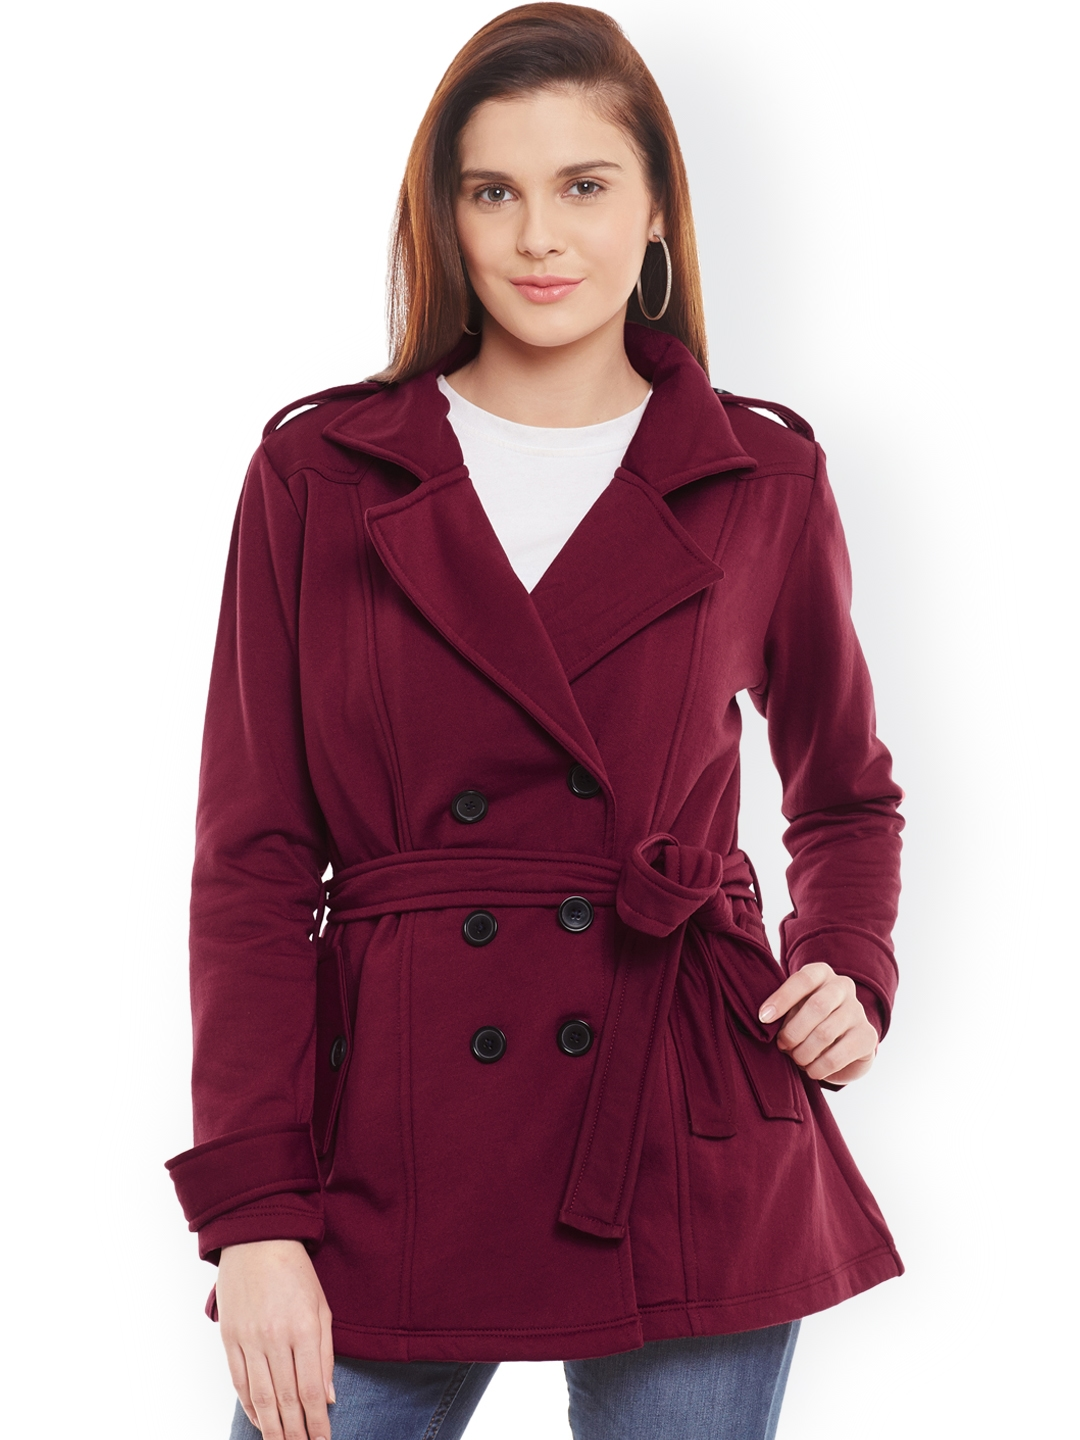 Coats - Buy Coats Online in India at Best Price